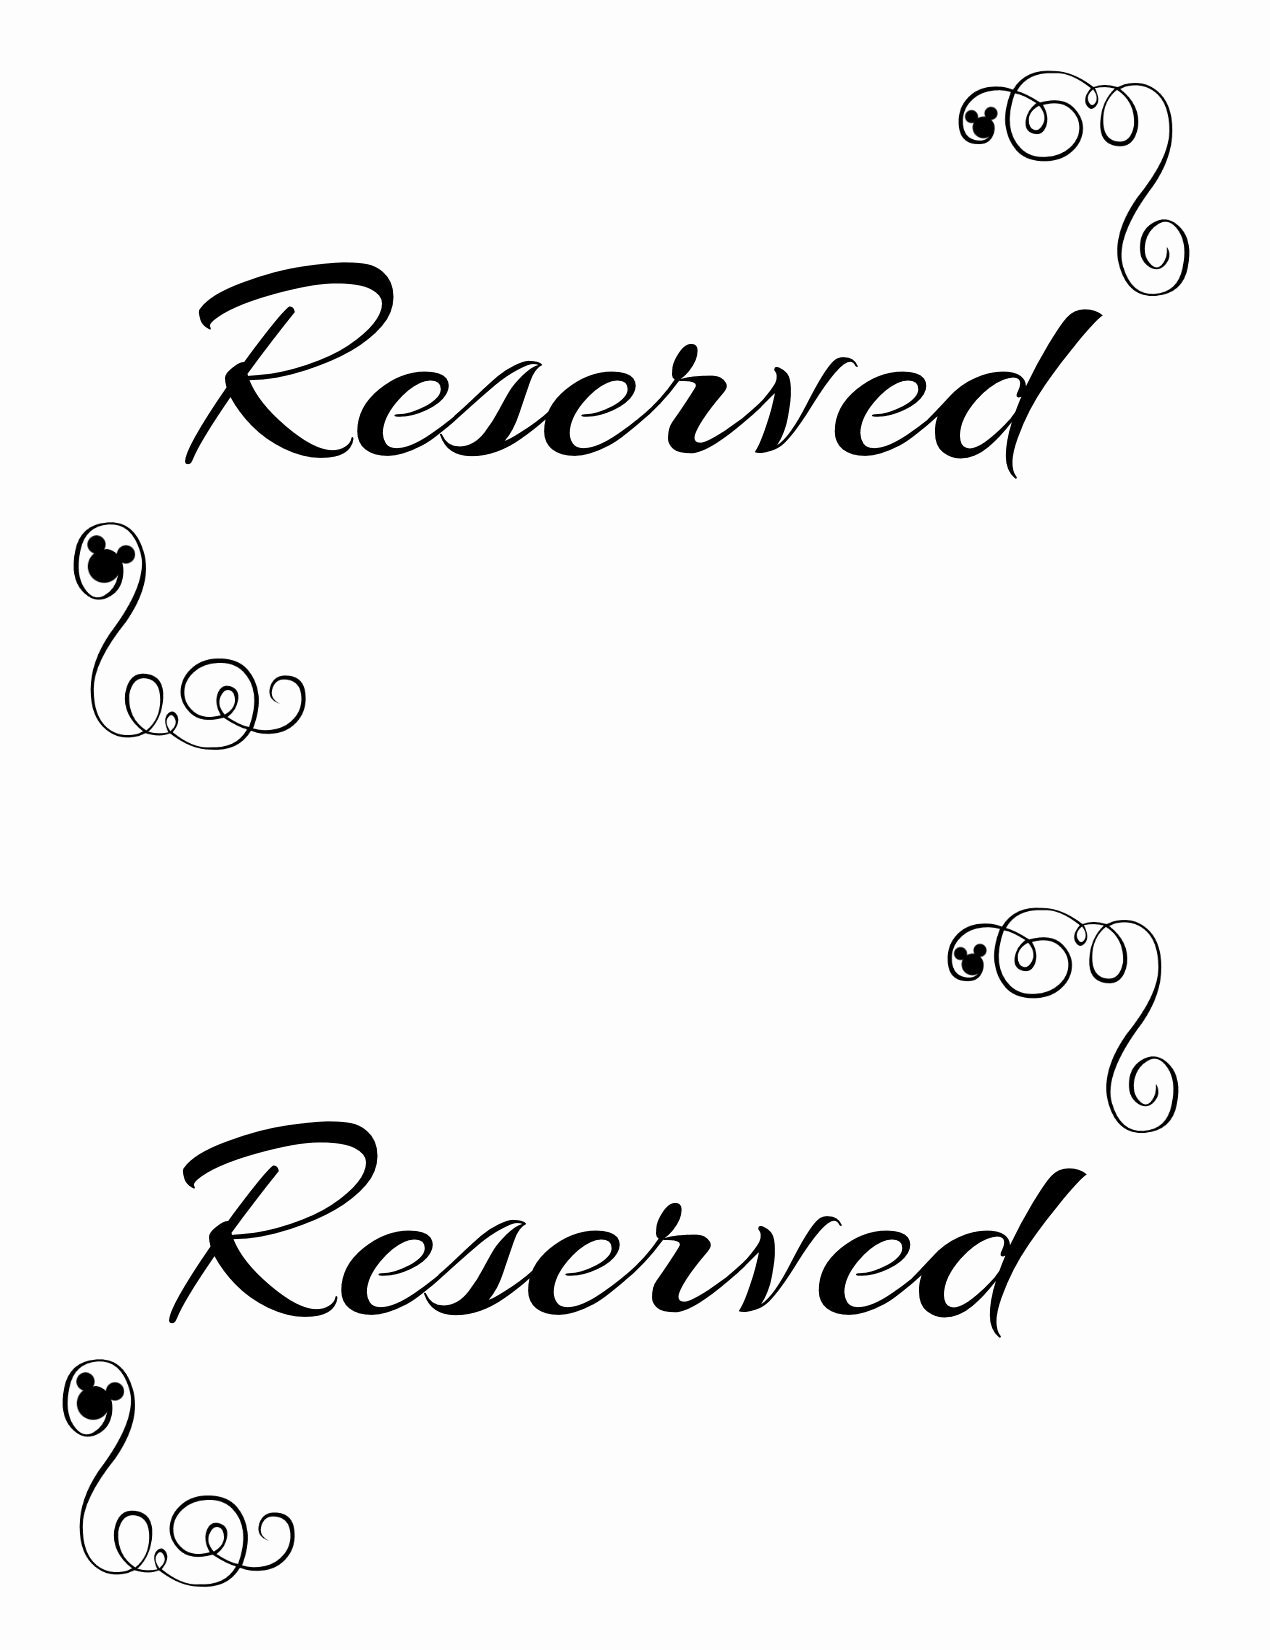 Free Printable Sign Templates Inspirational Free Printable Reserved Seating Signs for Your Wedding